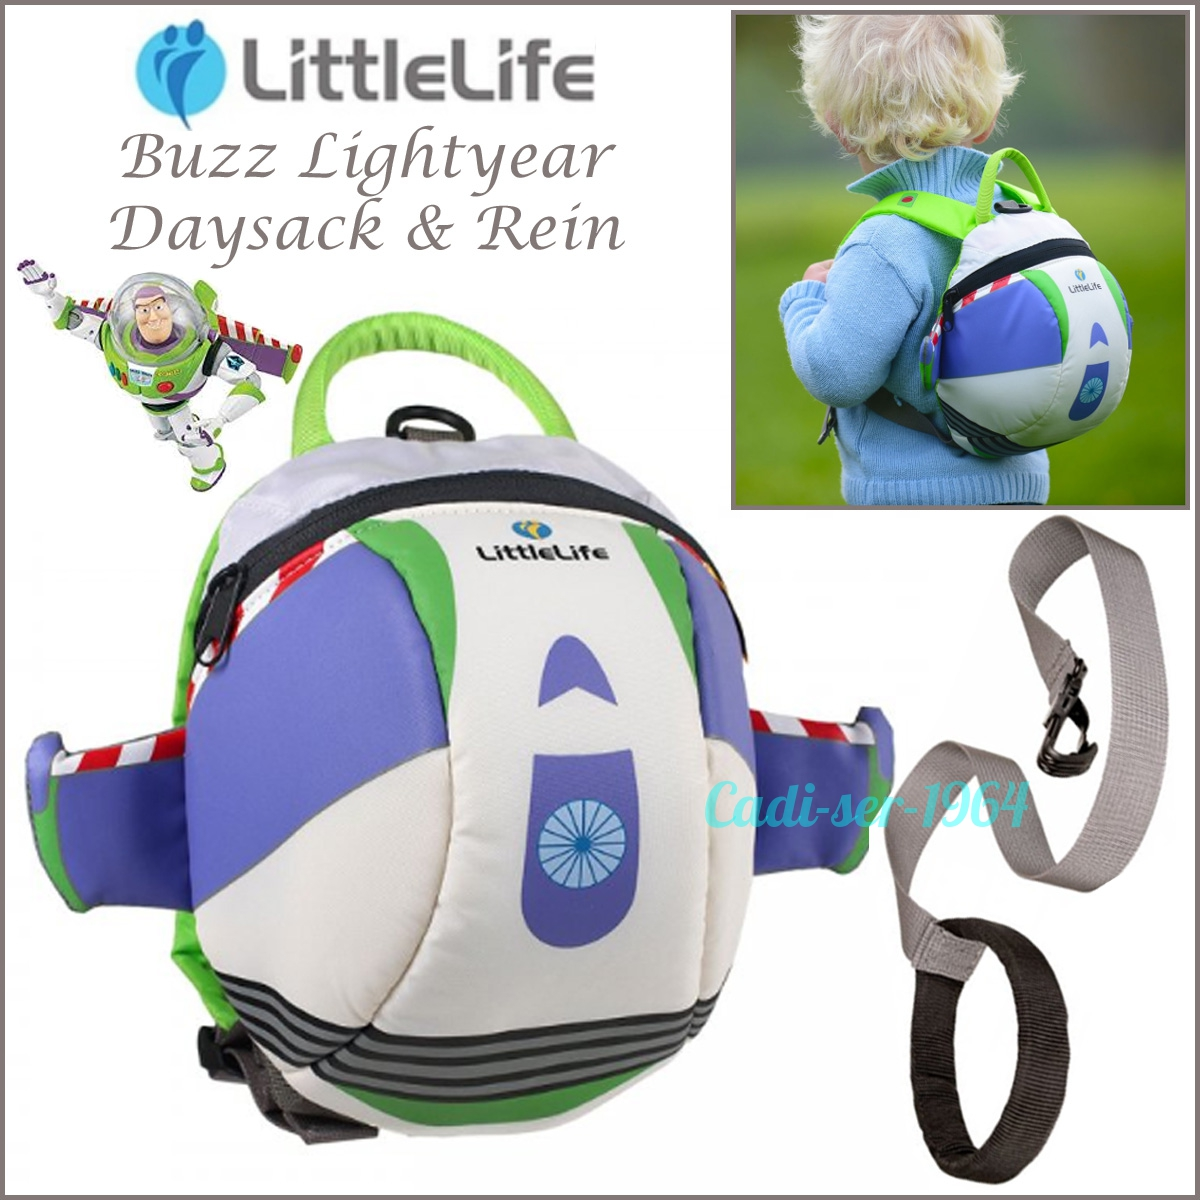 ce4cfa31bec Details about LittleLife Buzz Lightyear Toy Story Kids Child Daysack  Backpack and Safety Reins